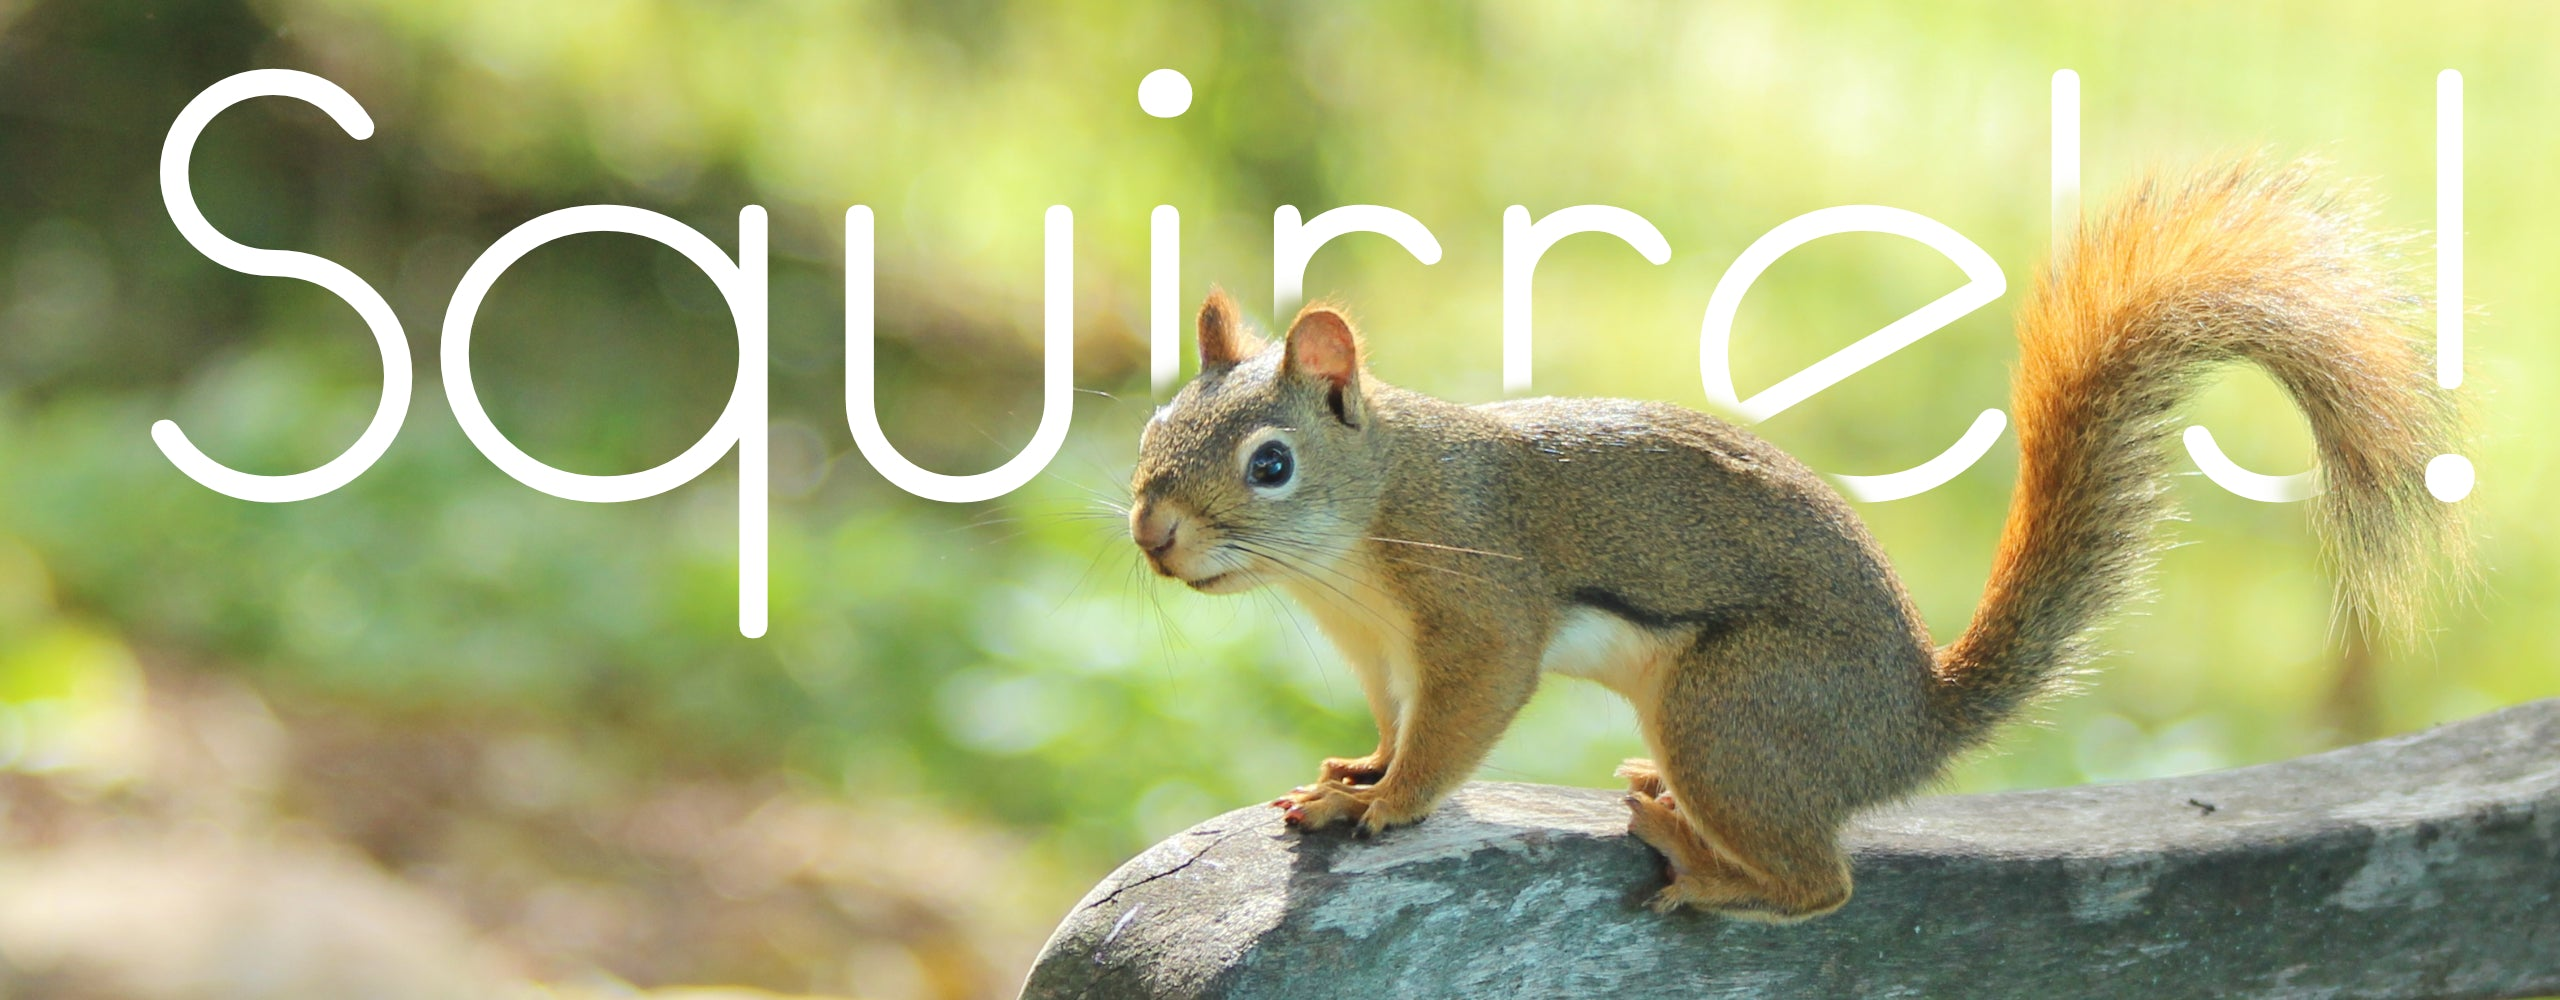 squirrel with text